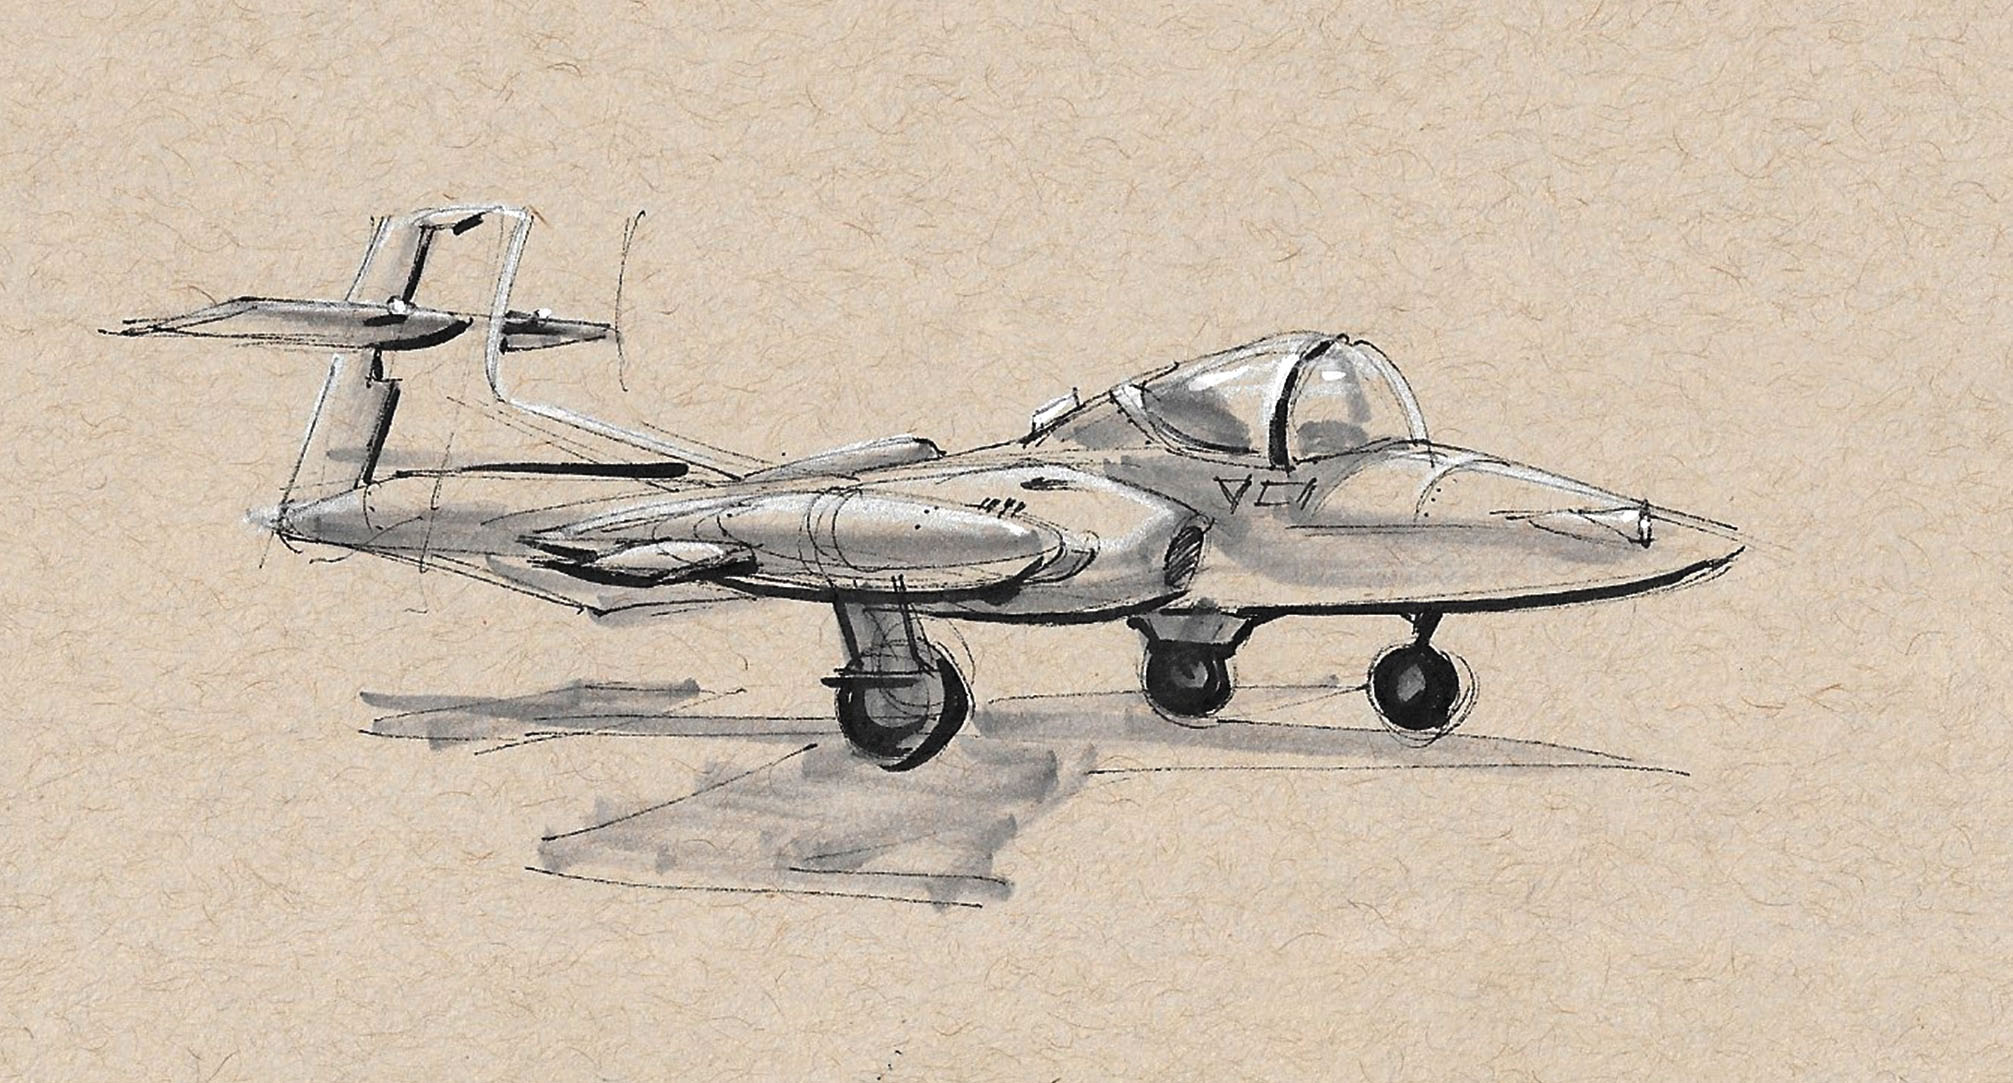 Sketch_MarchFields-02-Fighter Jet.jpg